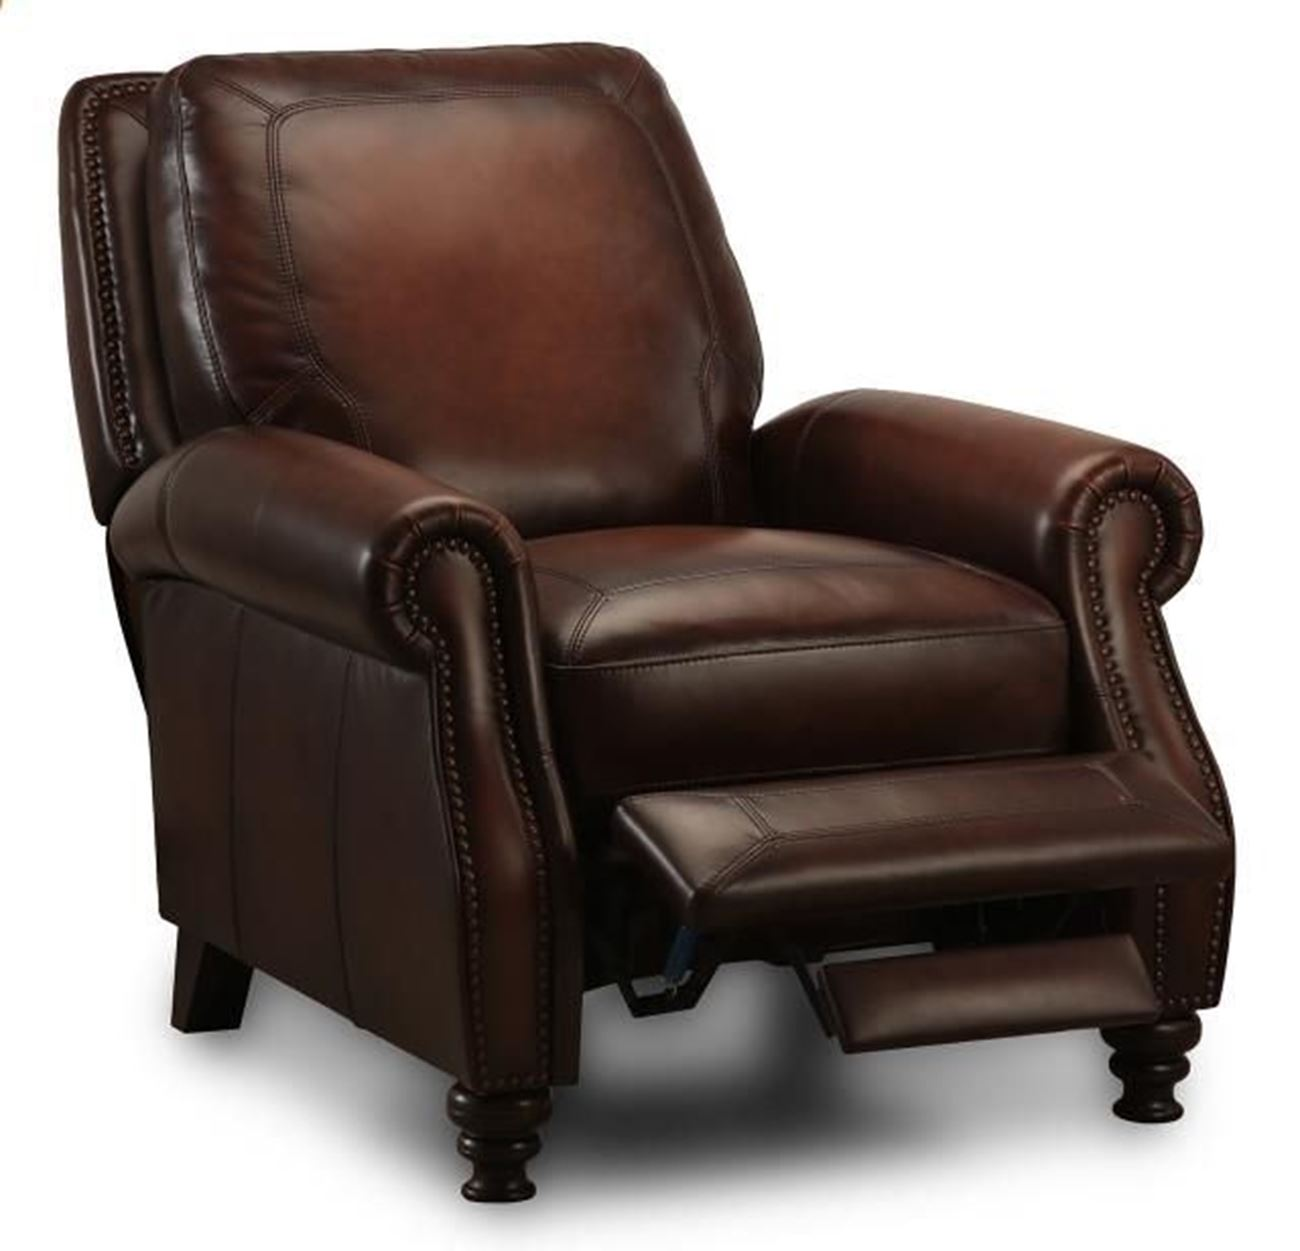 Picture of Ashland Prairie Meadows Leather Recliner